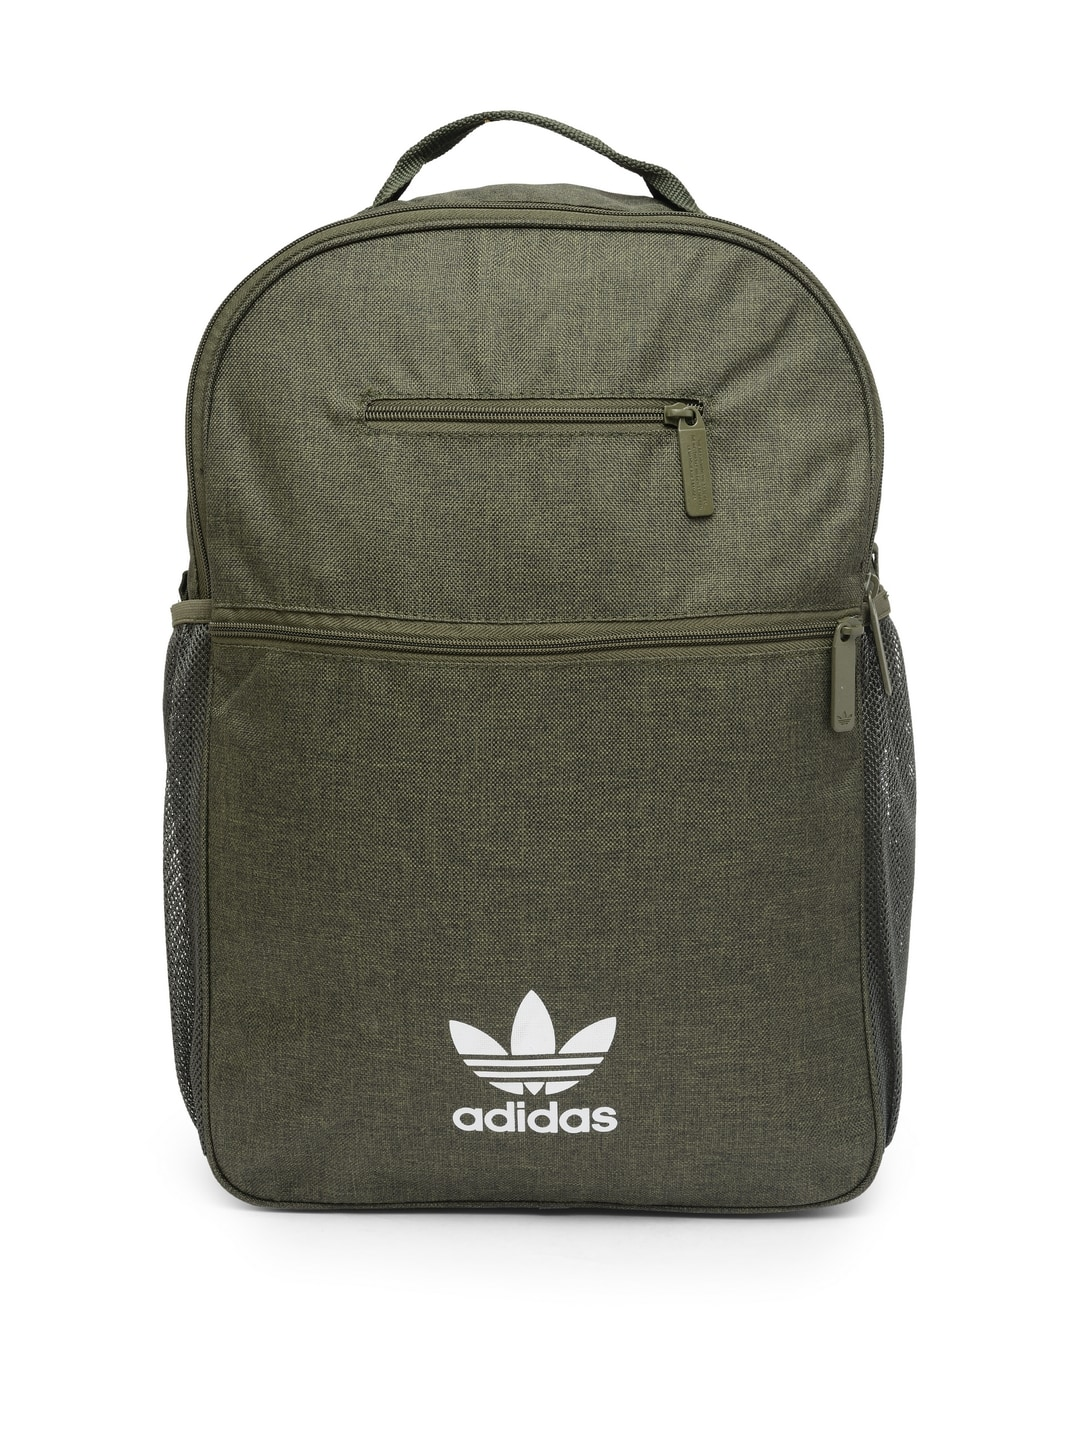 f95e84dc80 Adidas Original Backpack - Buy Adidas Original Backpack online in India